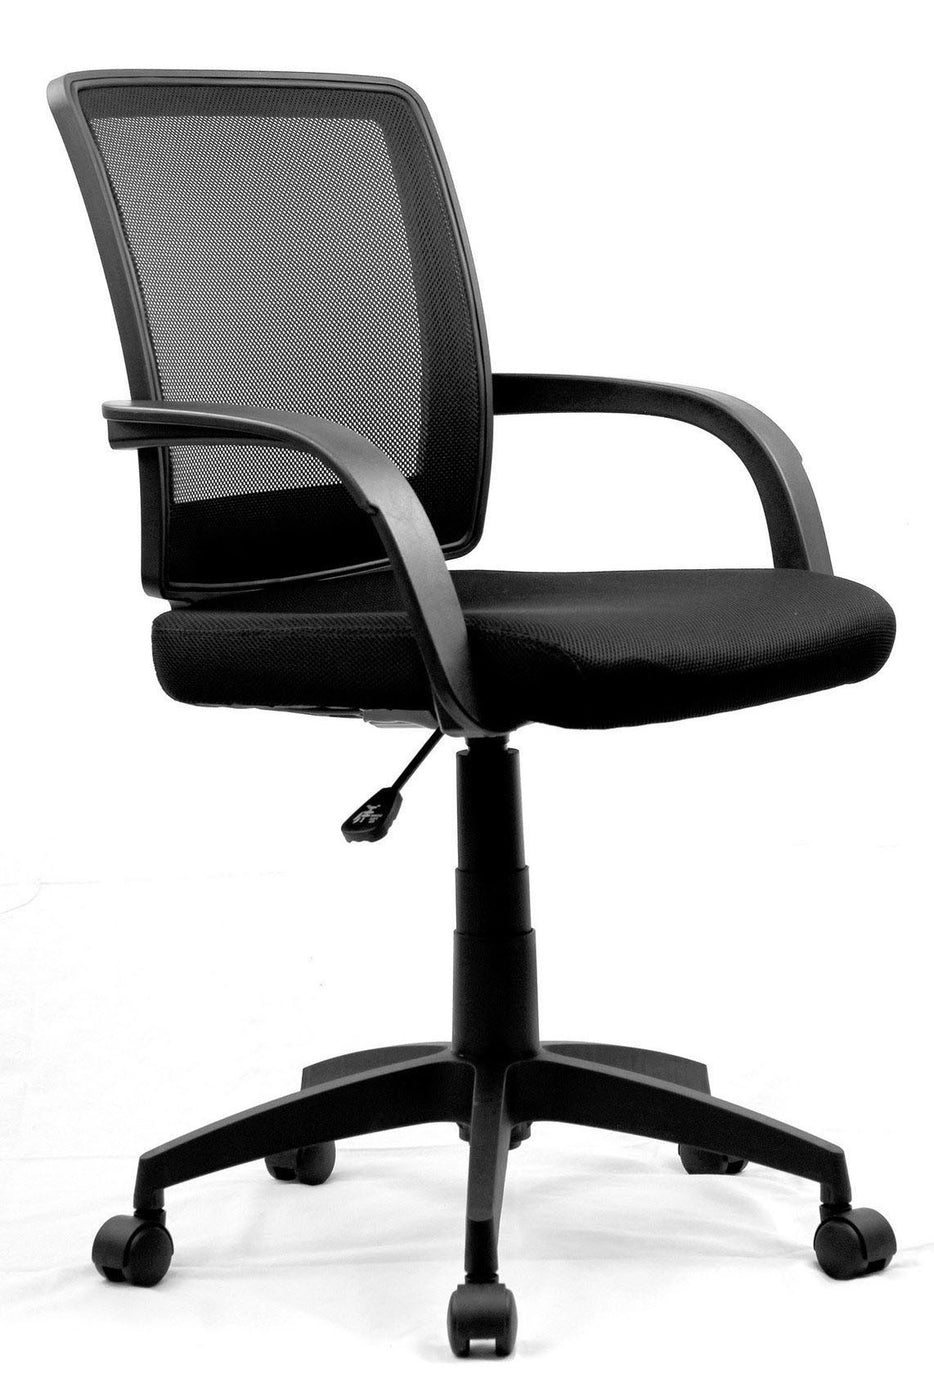 Upton Mesh Office Chair With Contoured Back British